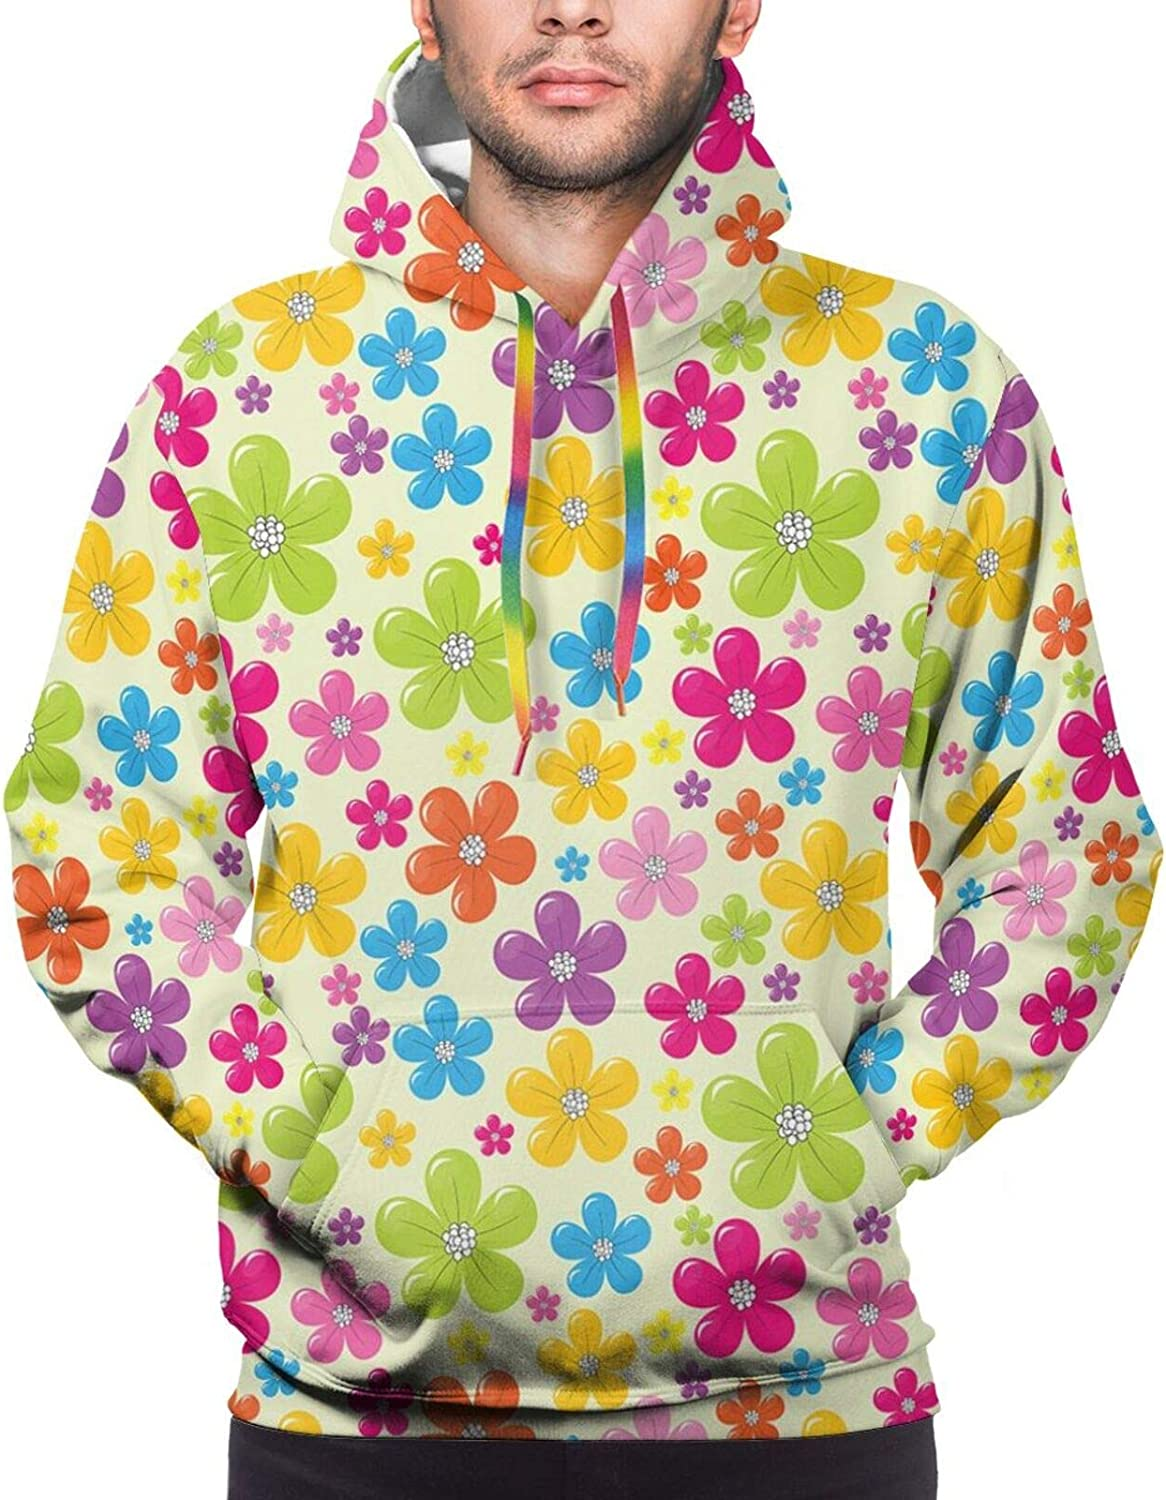 Men's Hoodies Sweatshirts,Sixties Inspirations with Colorful Dots and Swirls On A Black Background